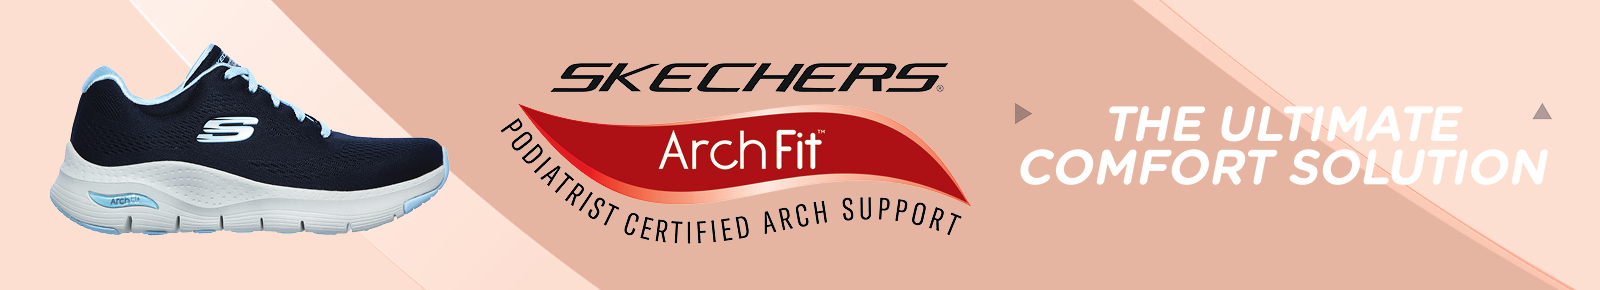 Buy Skechers Shoes Online with Afterpay